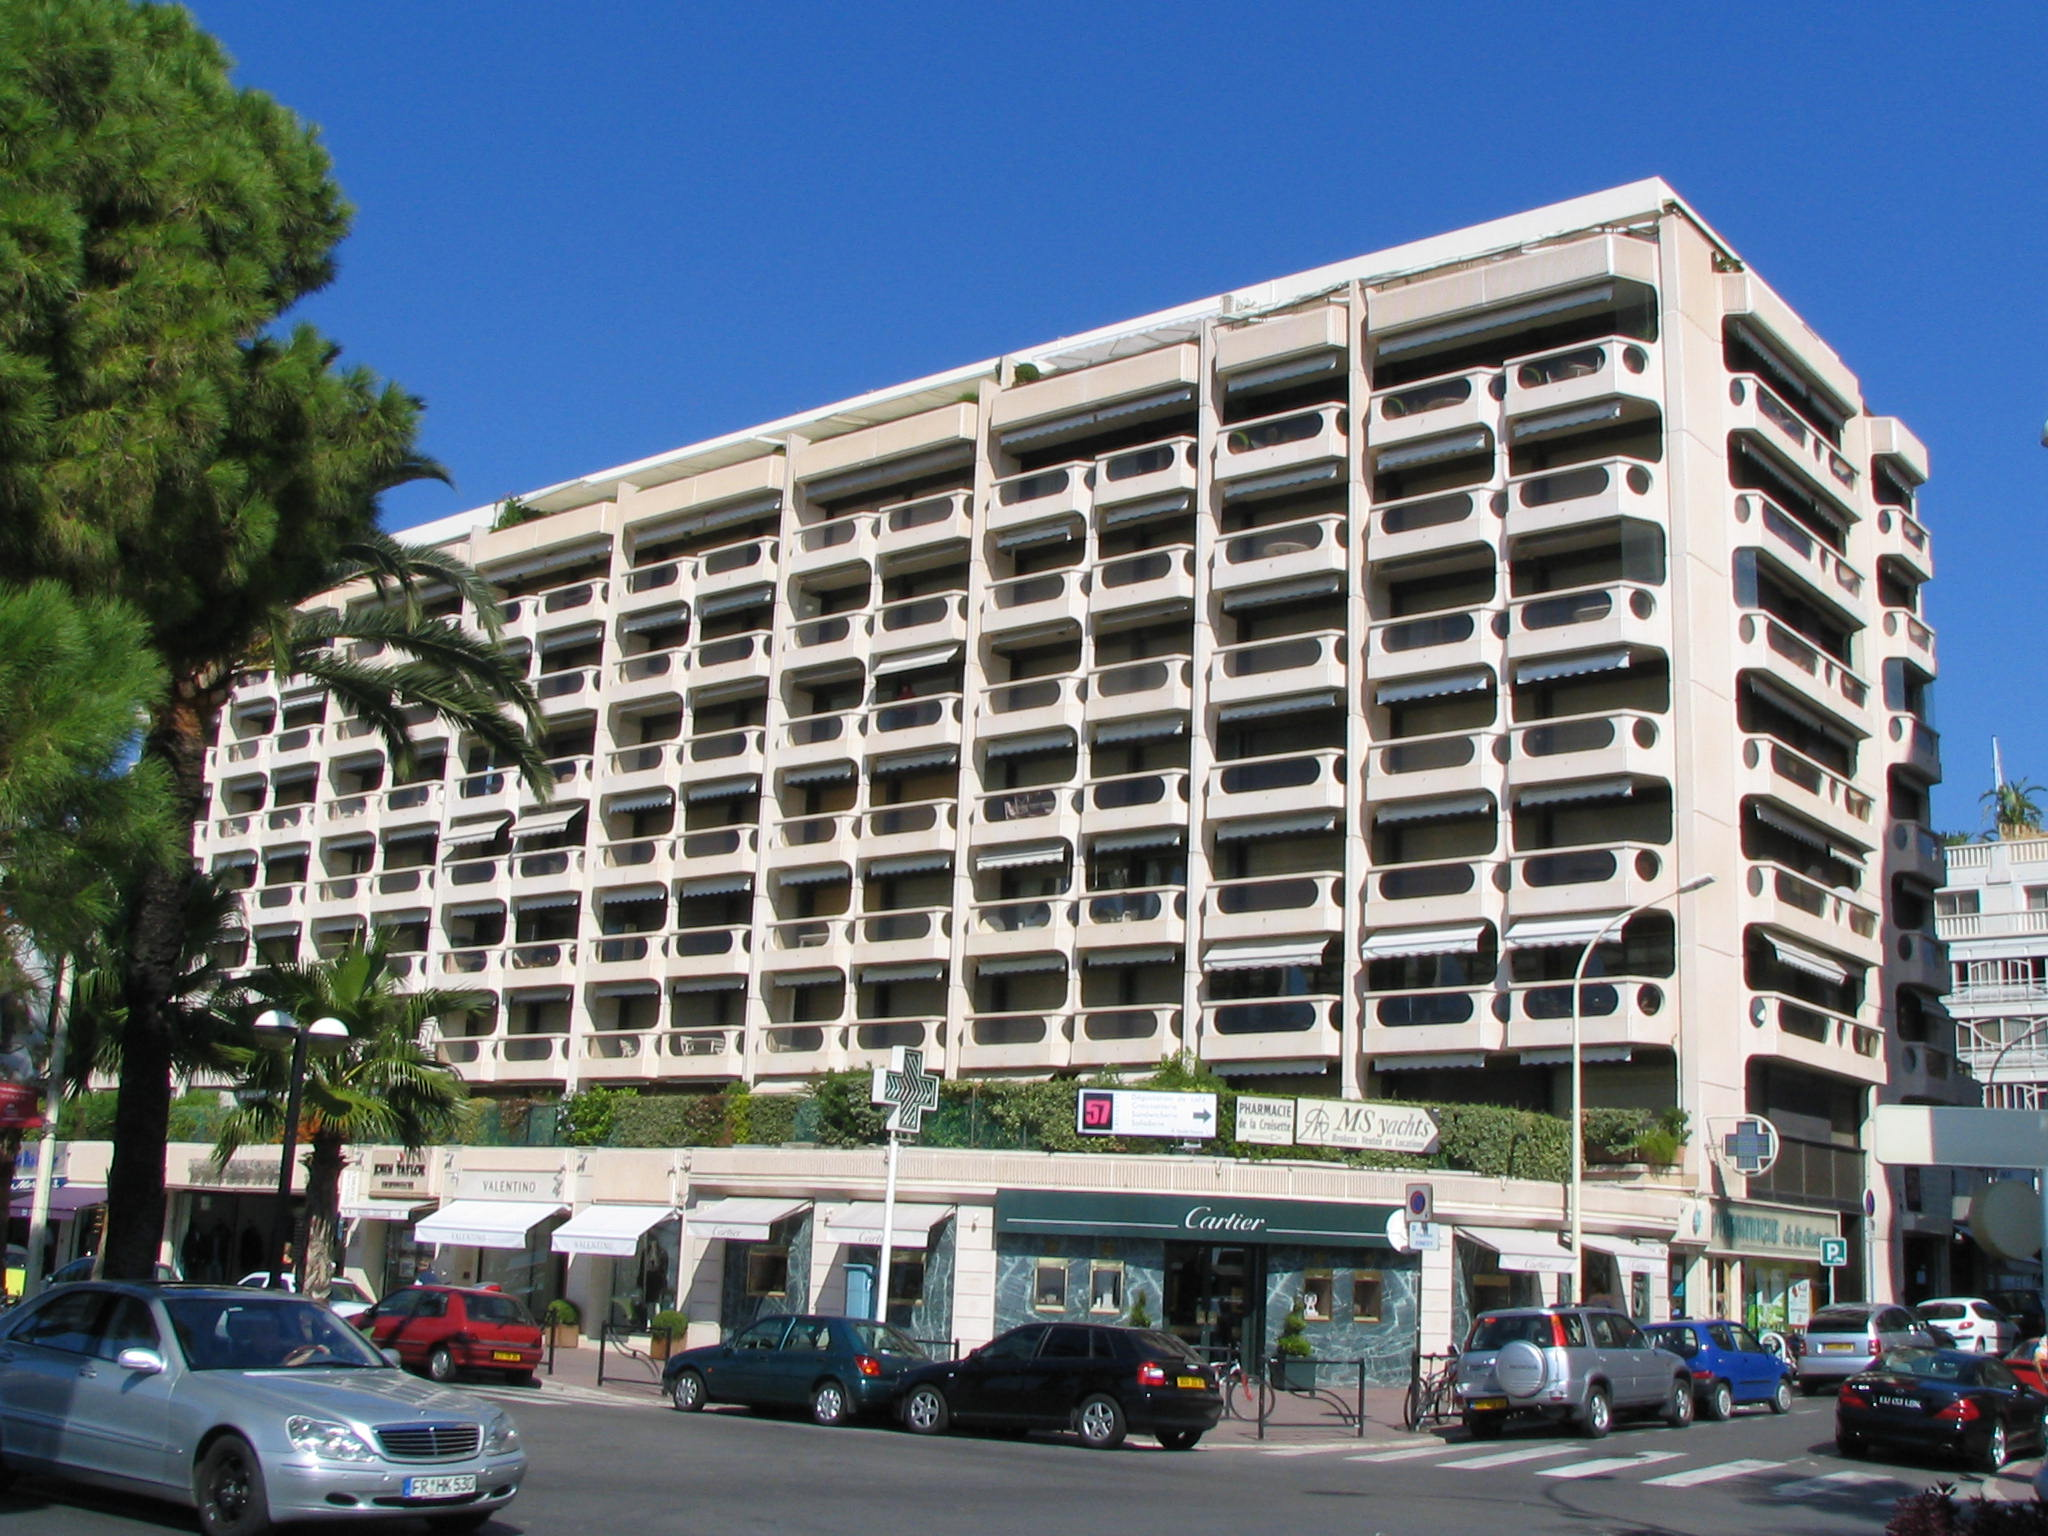 Grand Hotel Residence Cannes